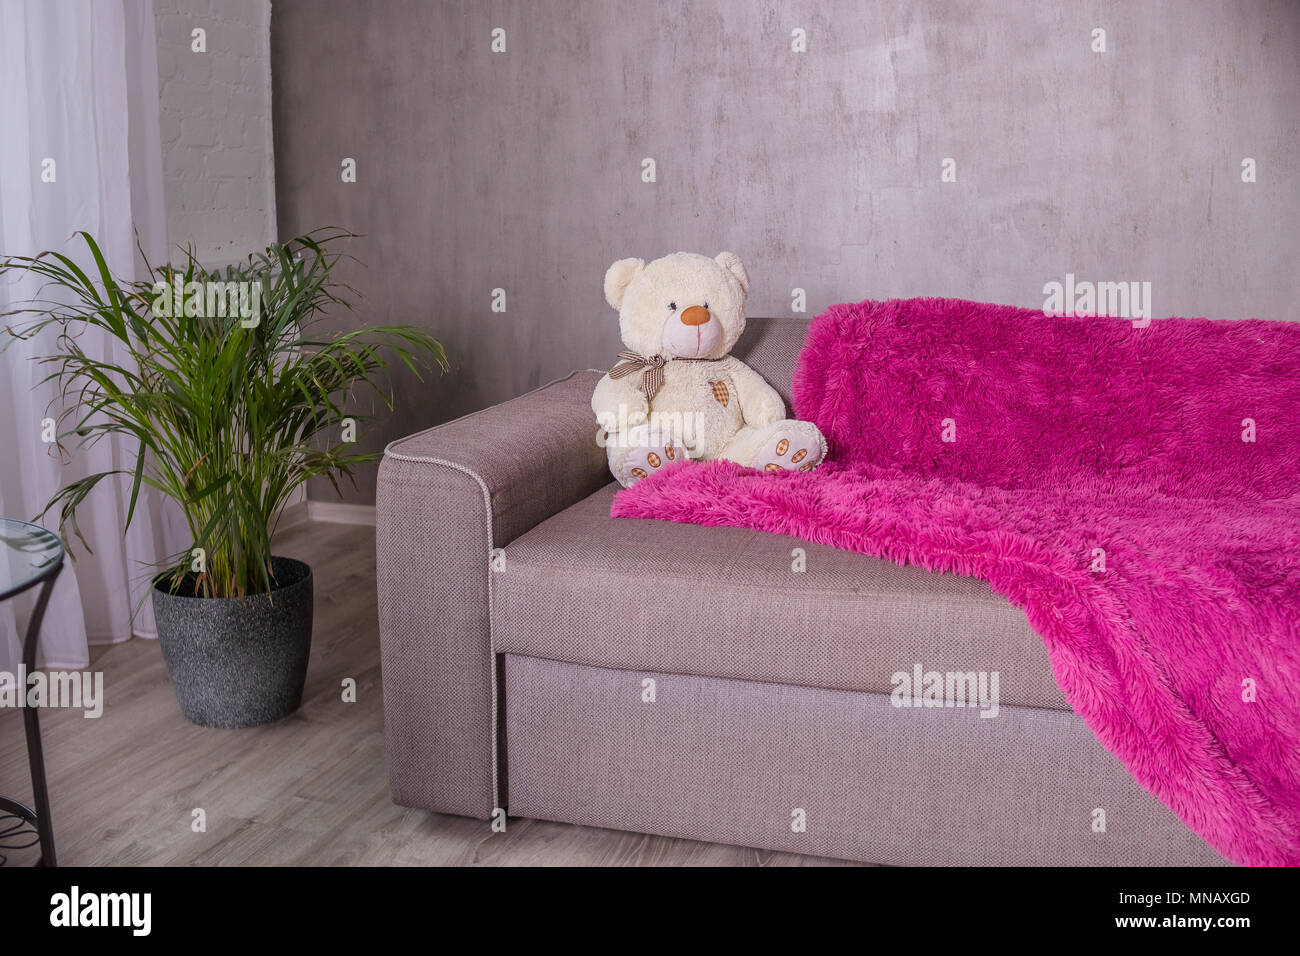 Fabulous Beige Teddy Stock Photos Beige Teddy Stock Images Alamy Gamerscity Chair Design For Home Gamerscityorg